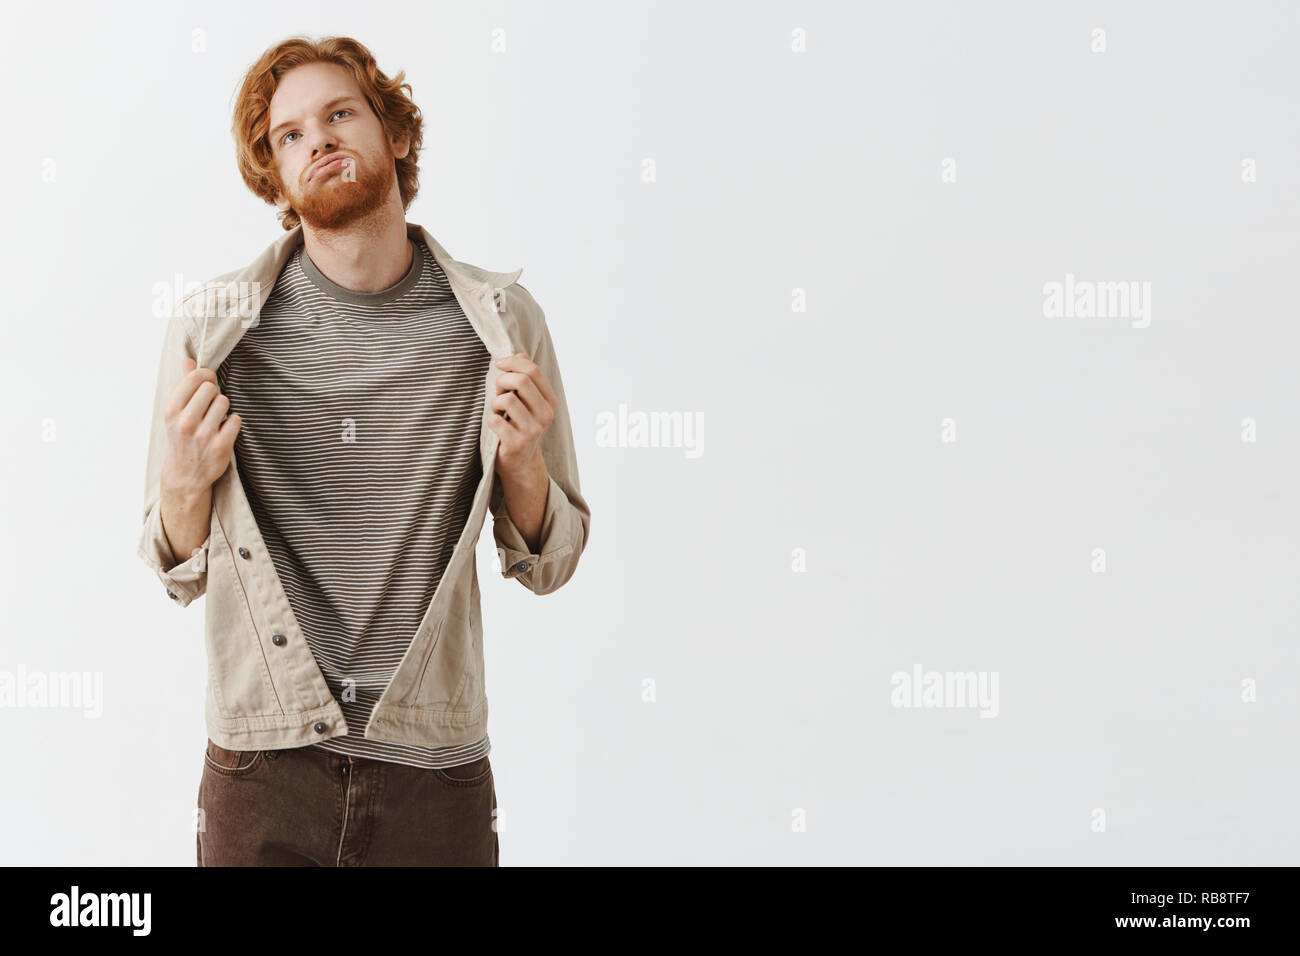 Redhead guy picked wrong clothes feeling boiling hot in warm jacket breathing out waving with cloth, looking up at sun feeling discomfort standing displeased and bothered over gray background - Stock Image